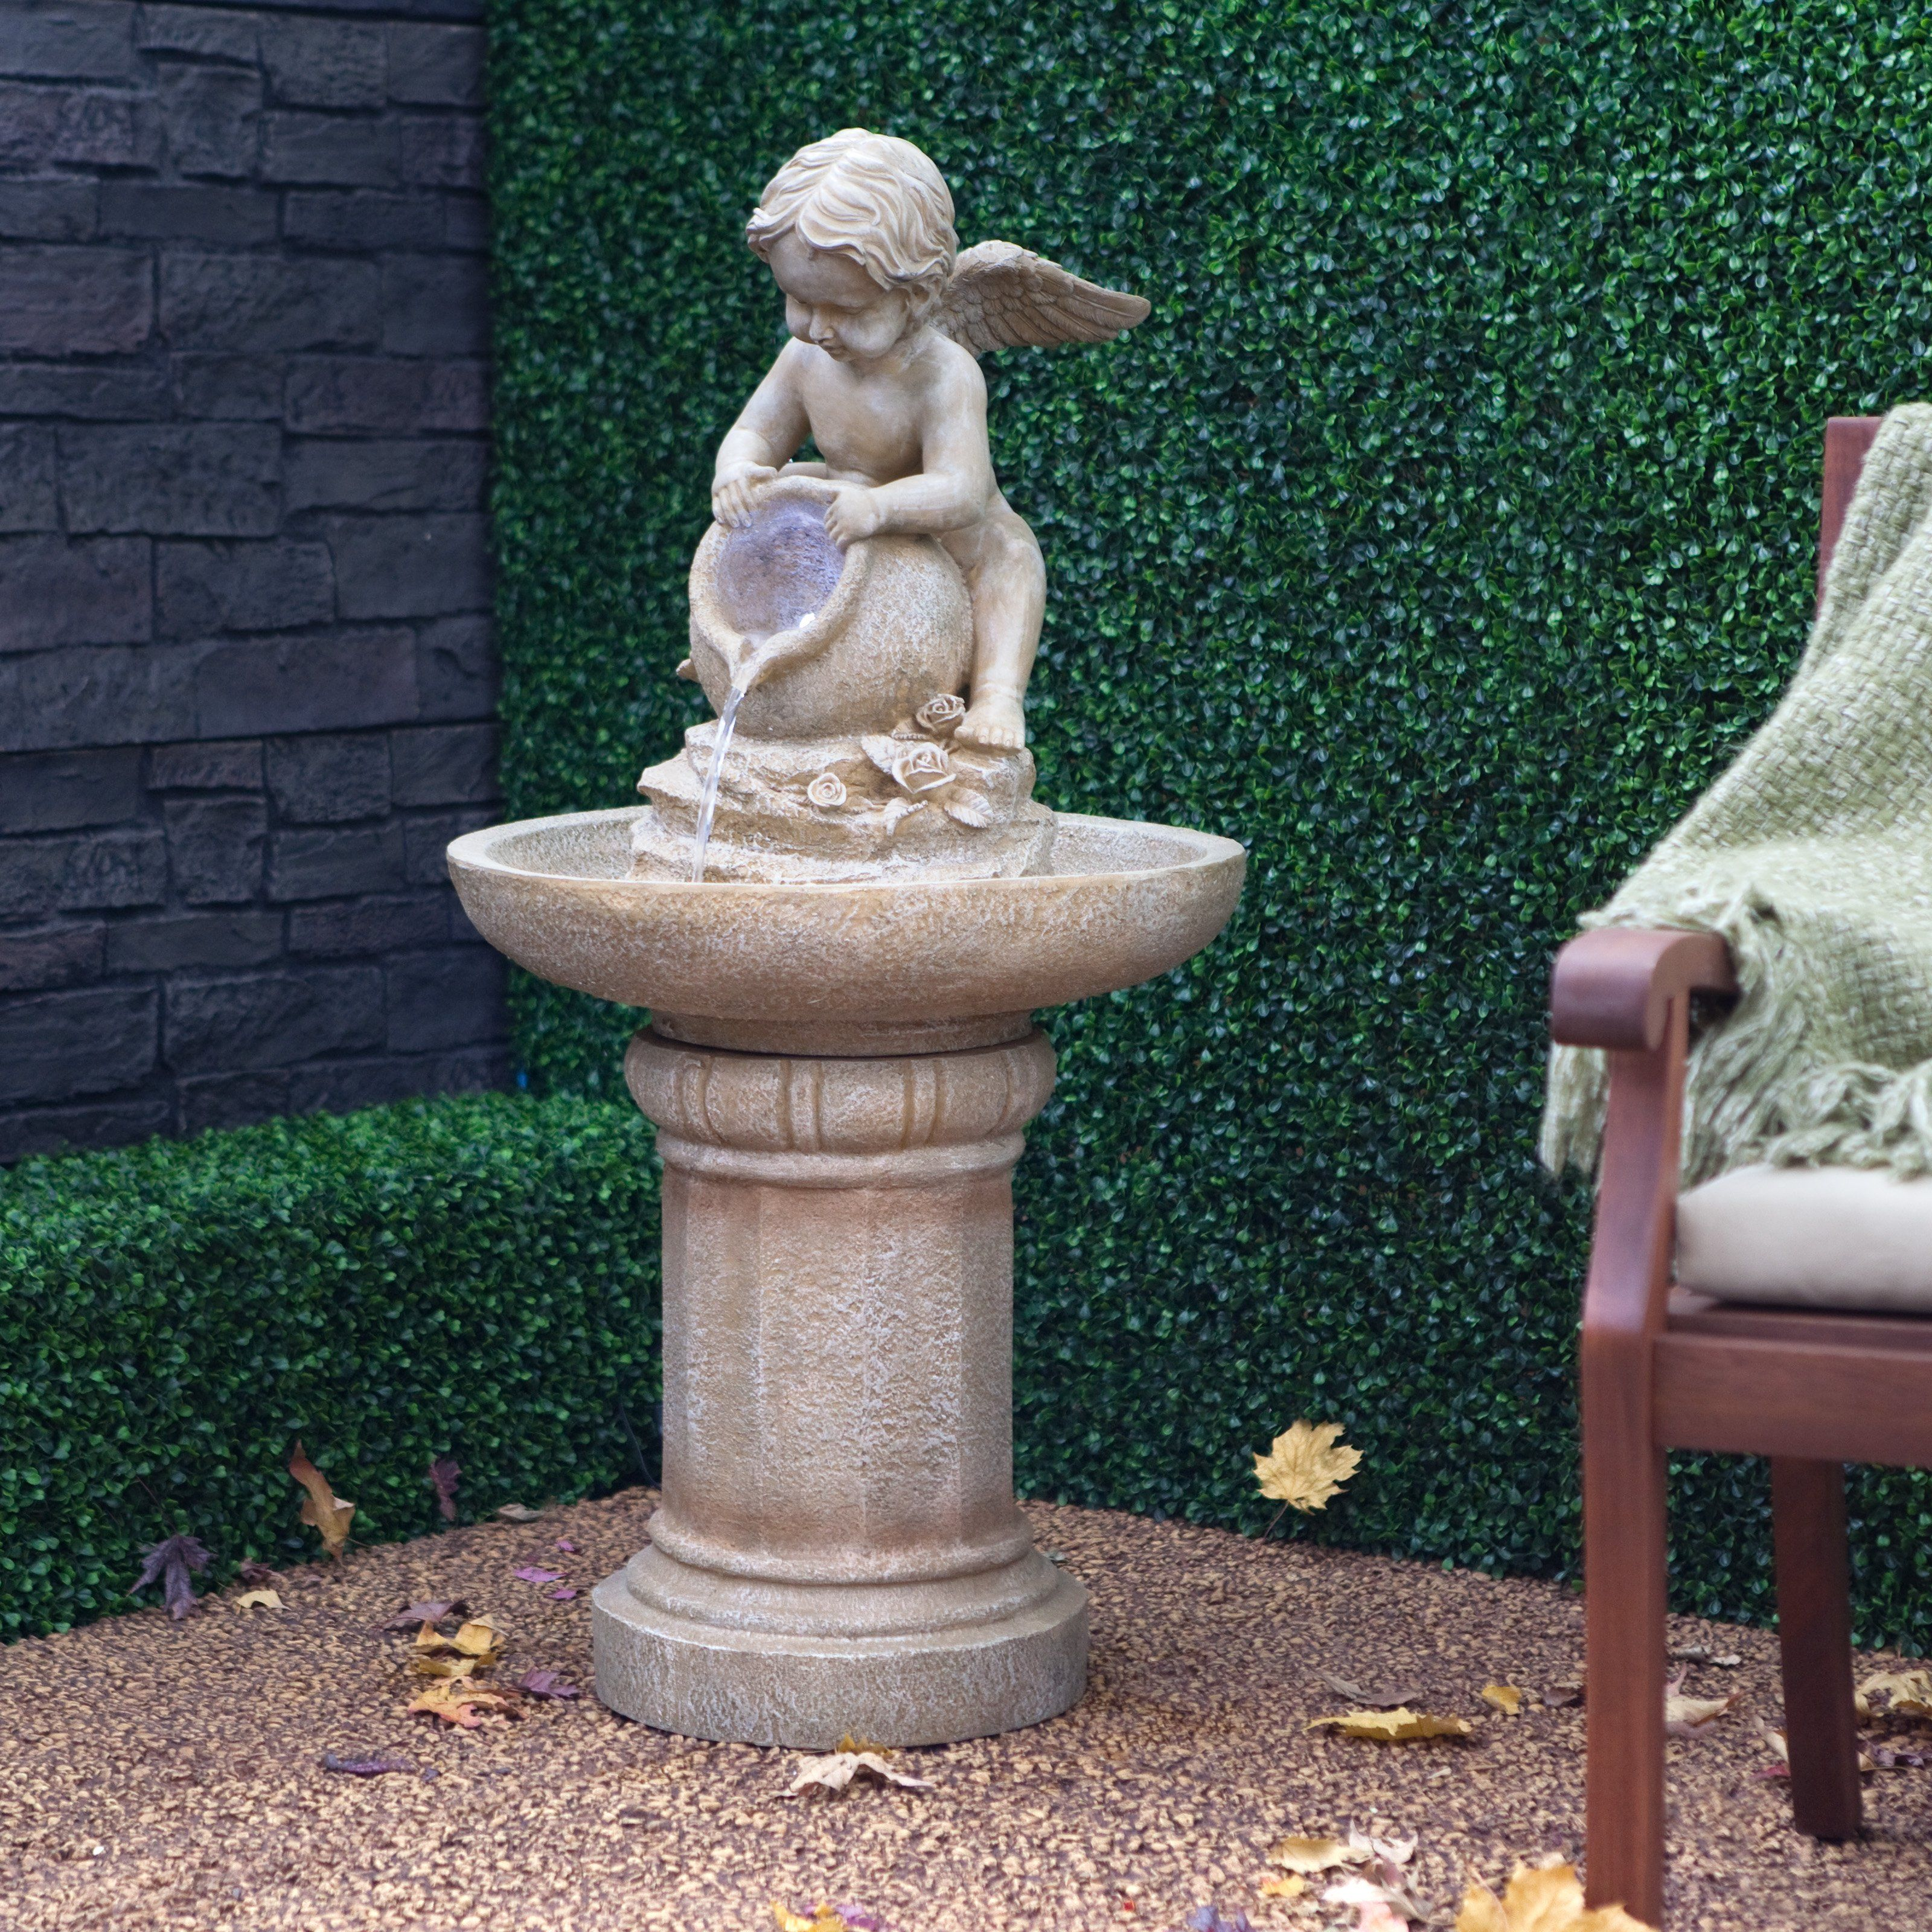 Joyful Cherub Bird Bath Fountain With Lights $349.99